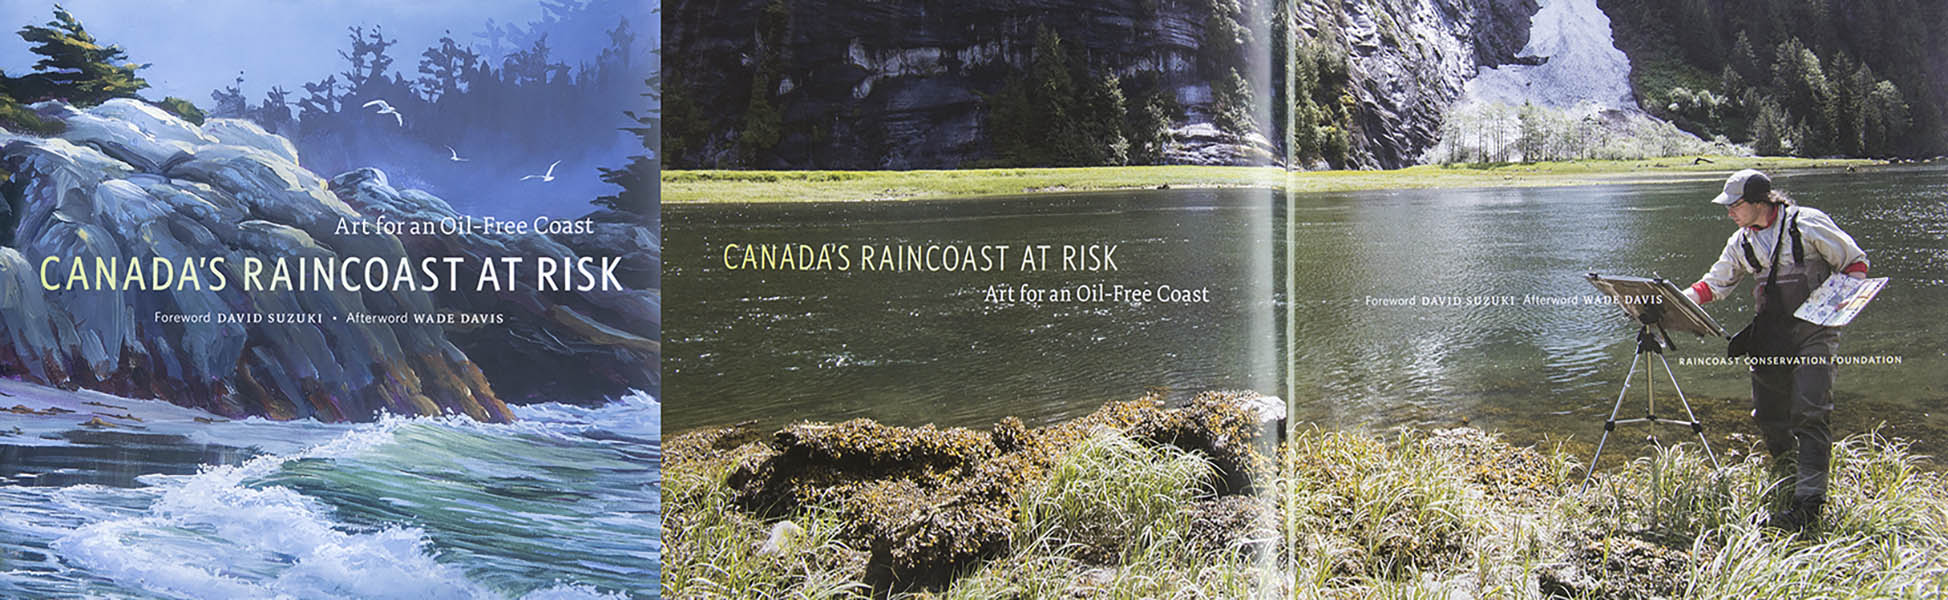 Art for an Oil-Free-Coast - Canada's raincoast at Risk - 2012